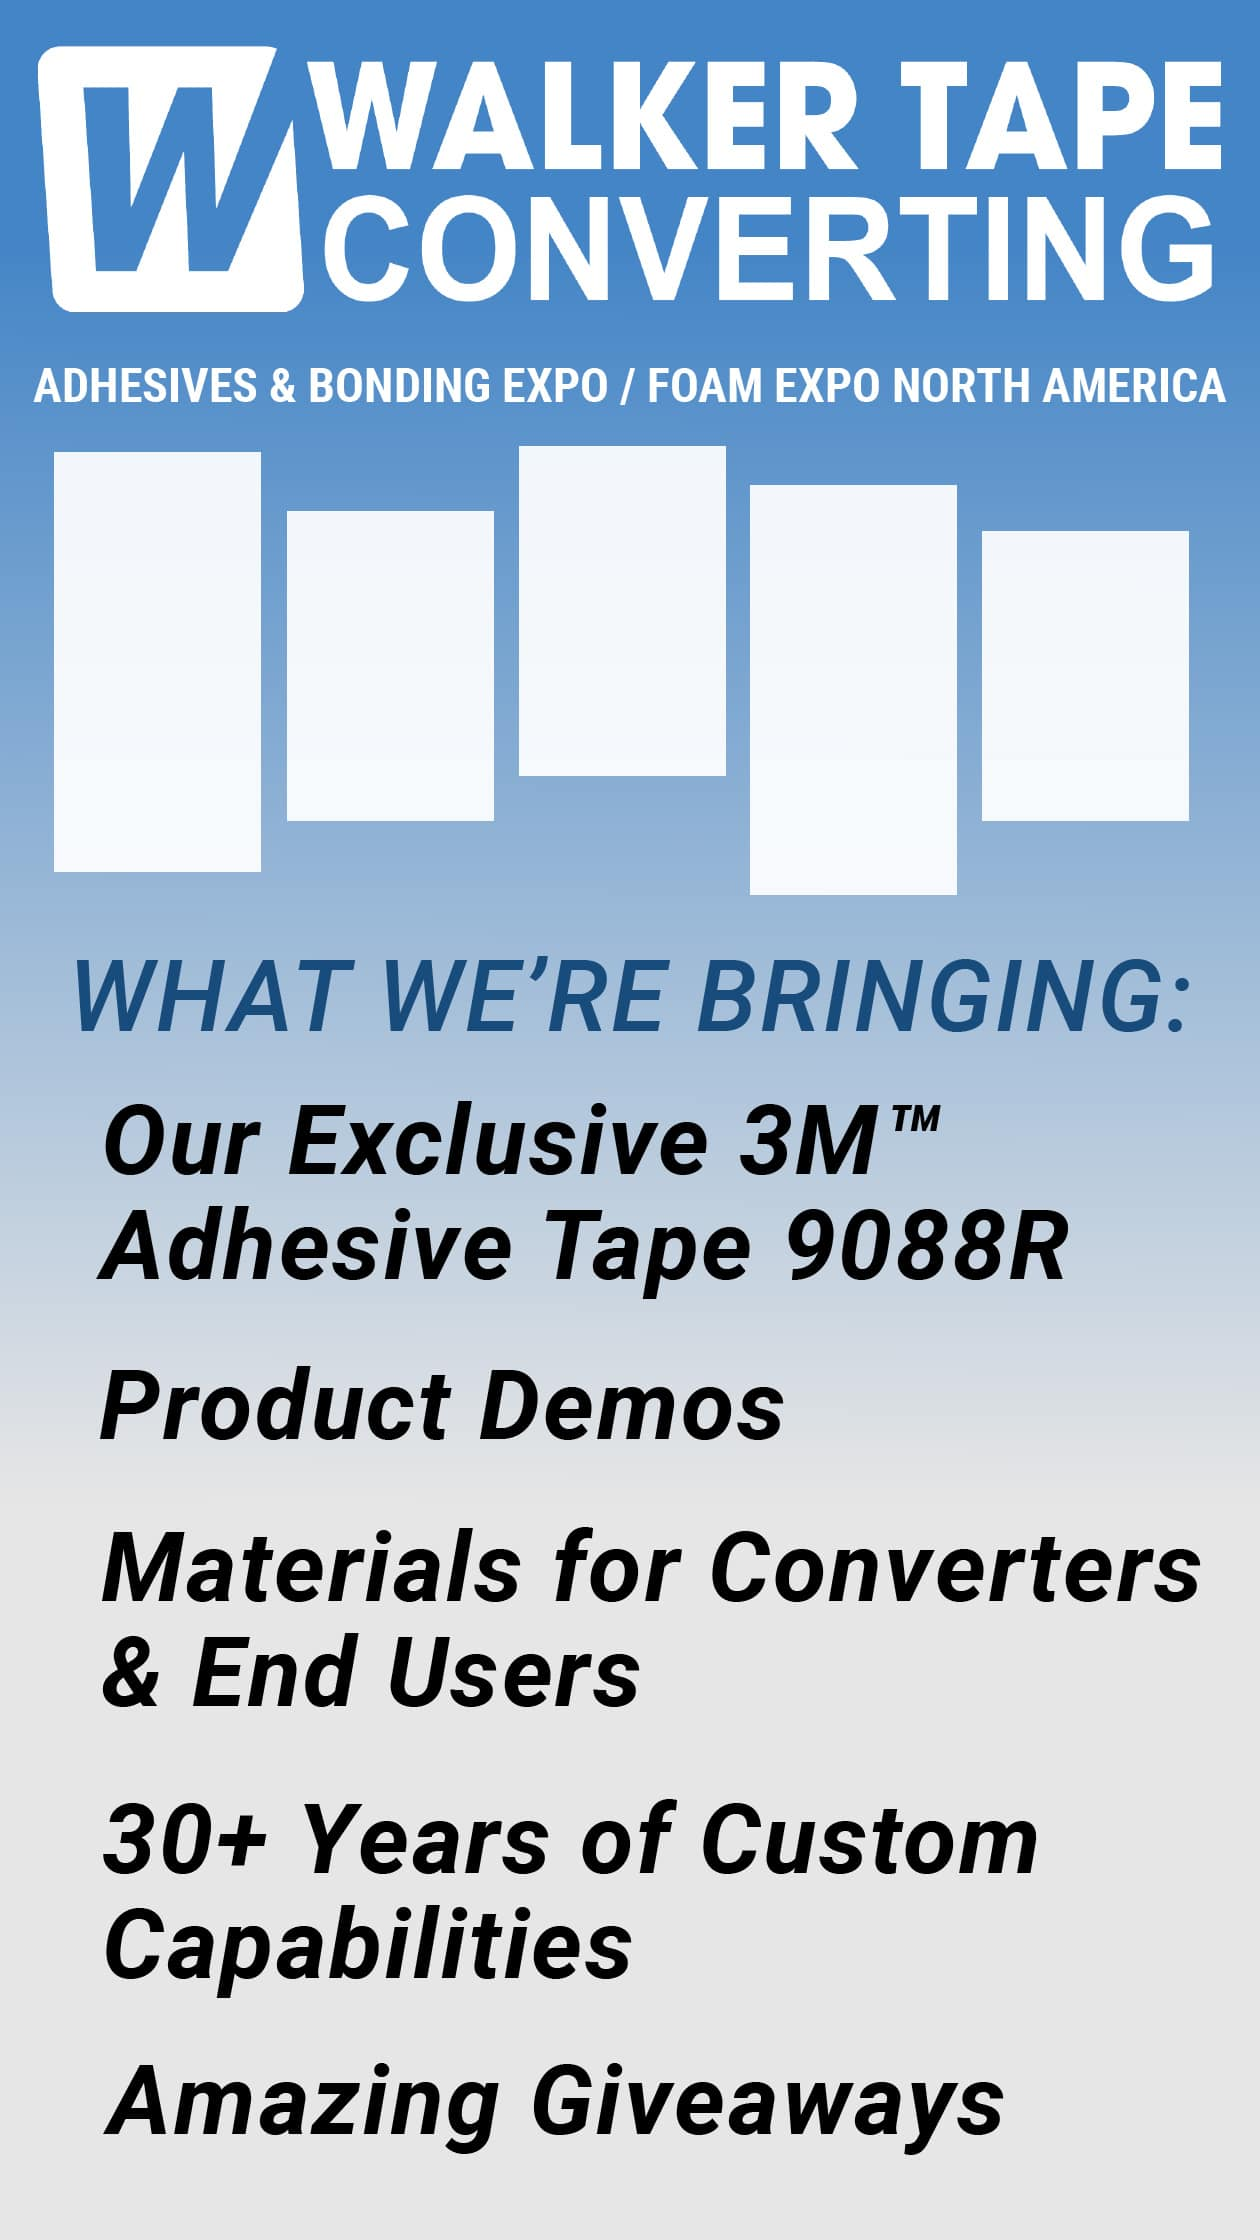 Walker Tape Converting Adhesives and bonding expo